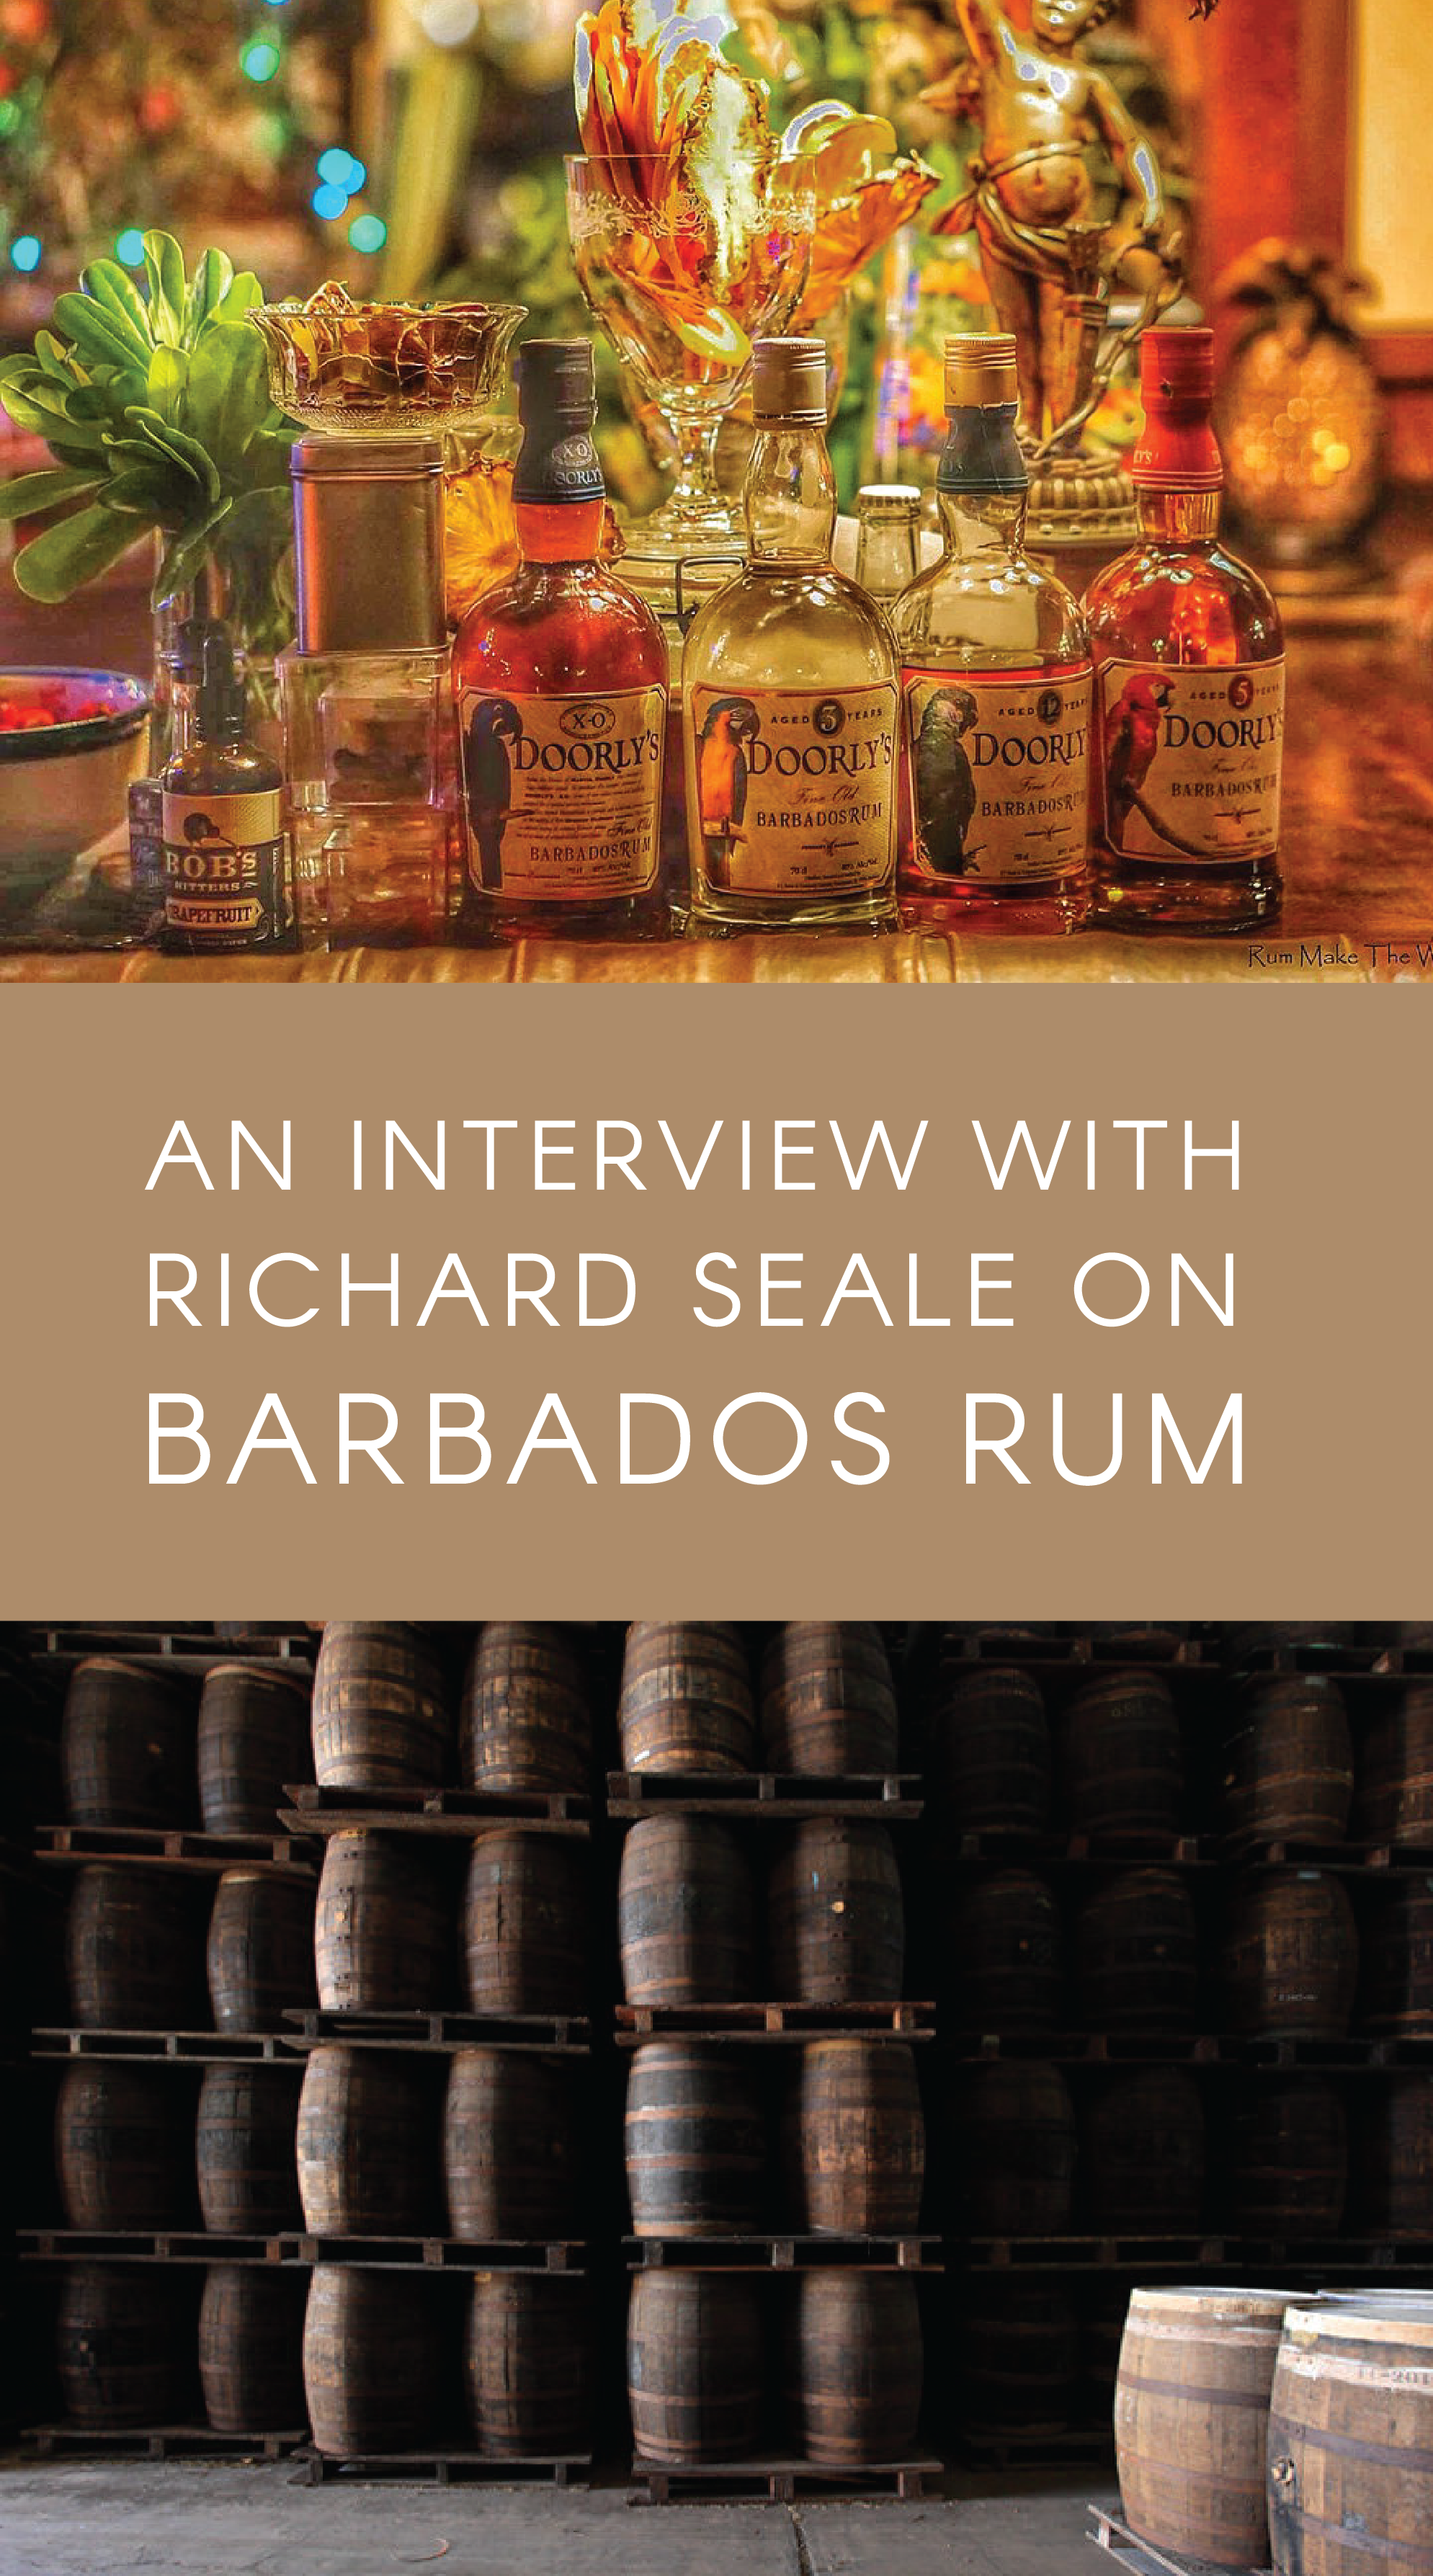 Love Rum? Then you have got to read this! Barbados rum